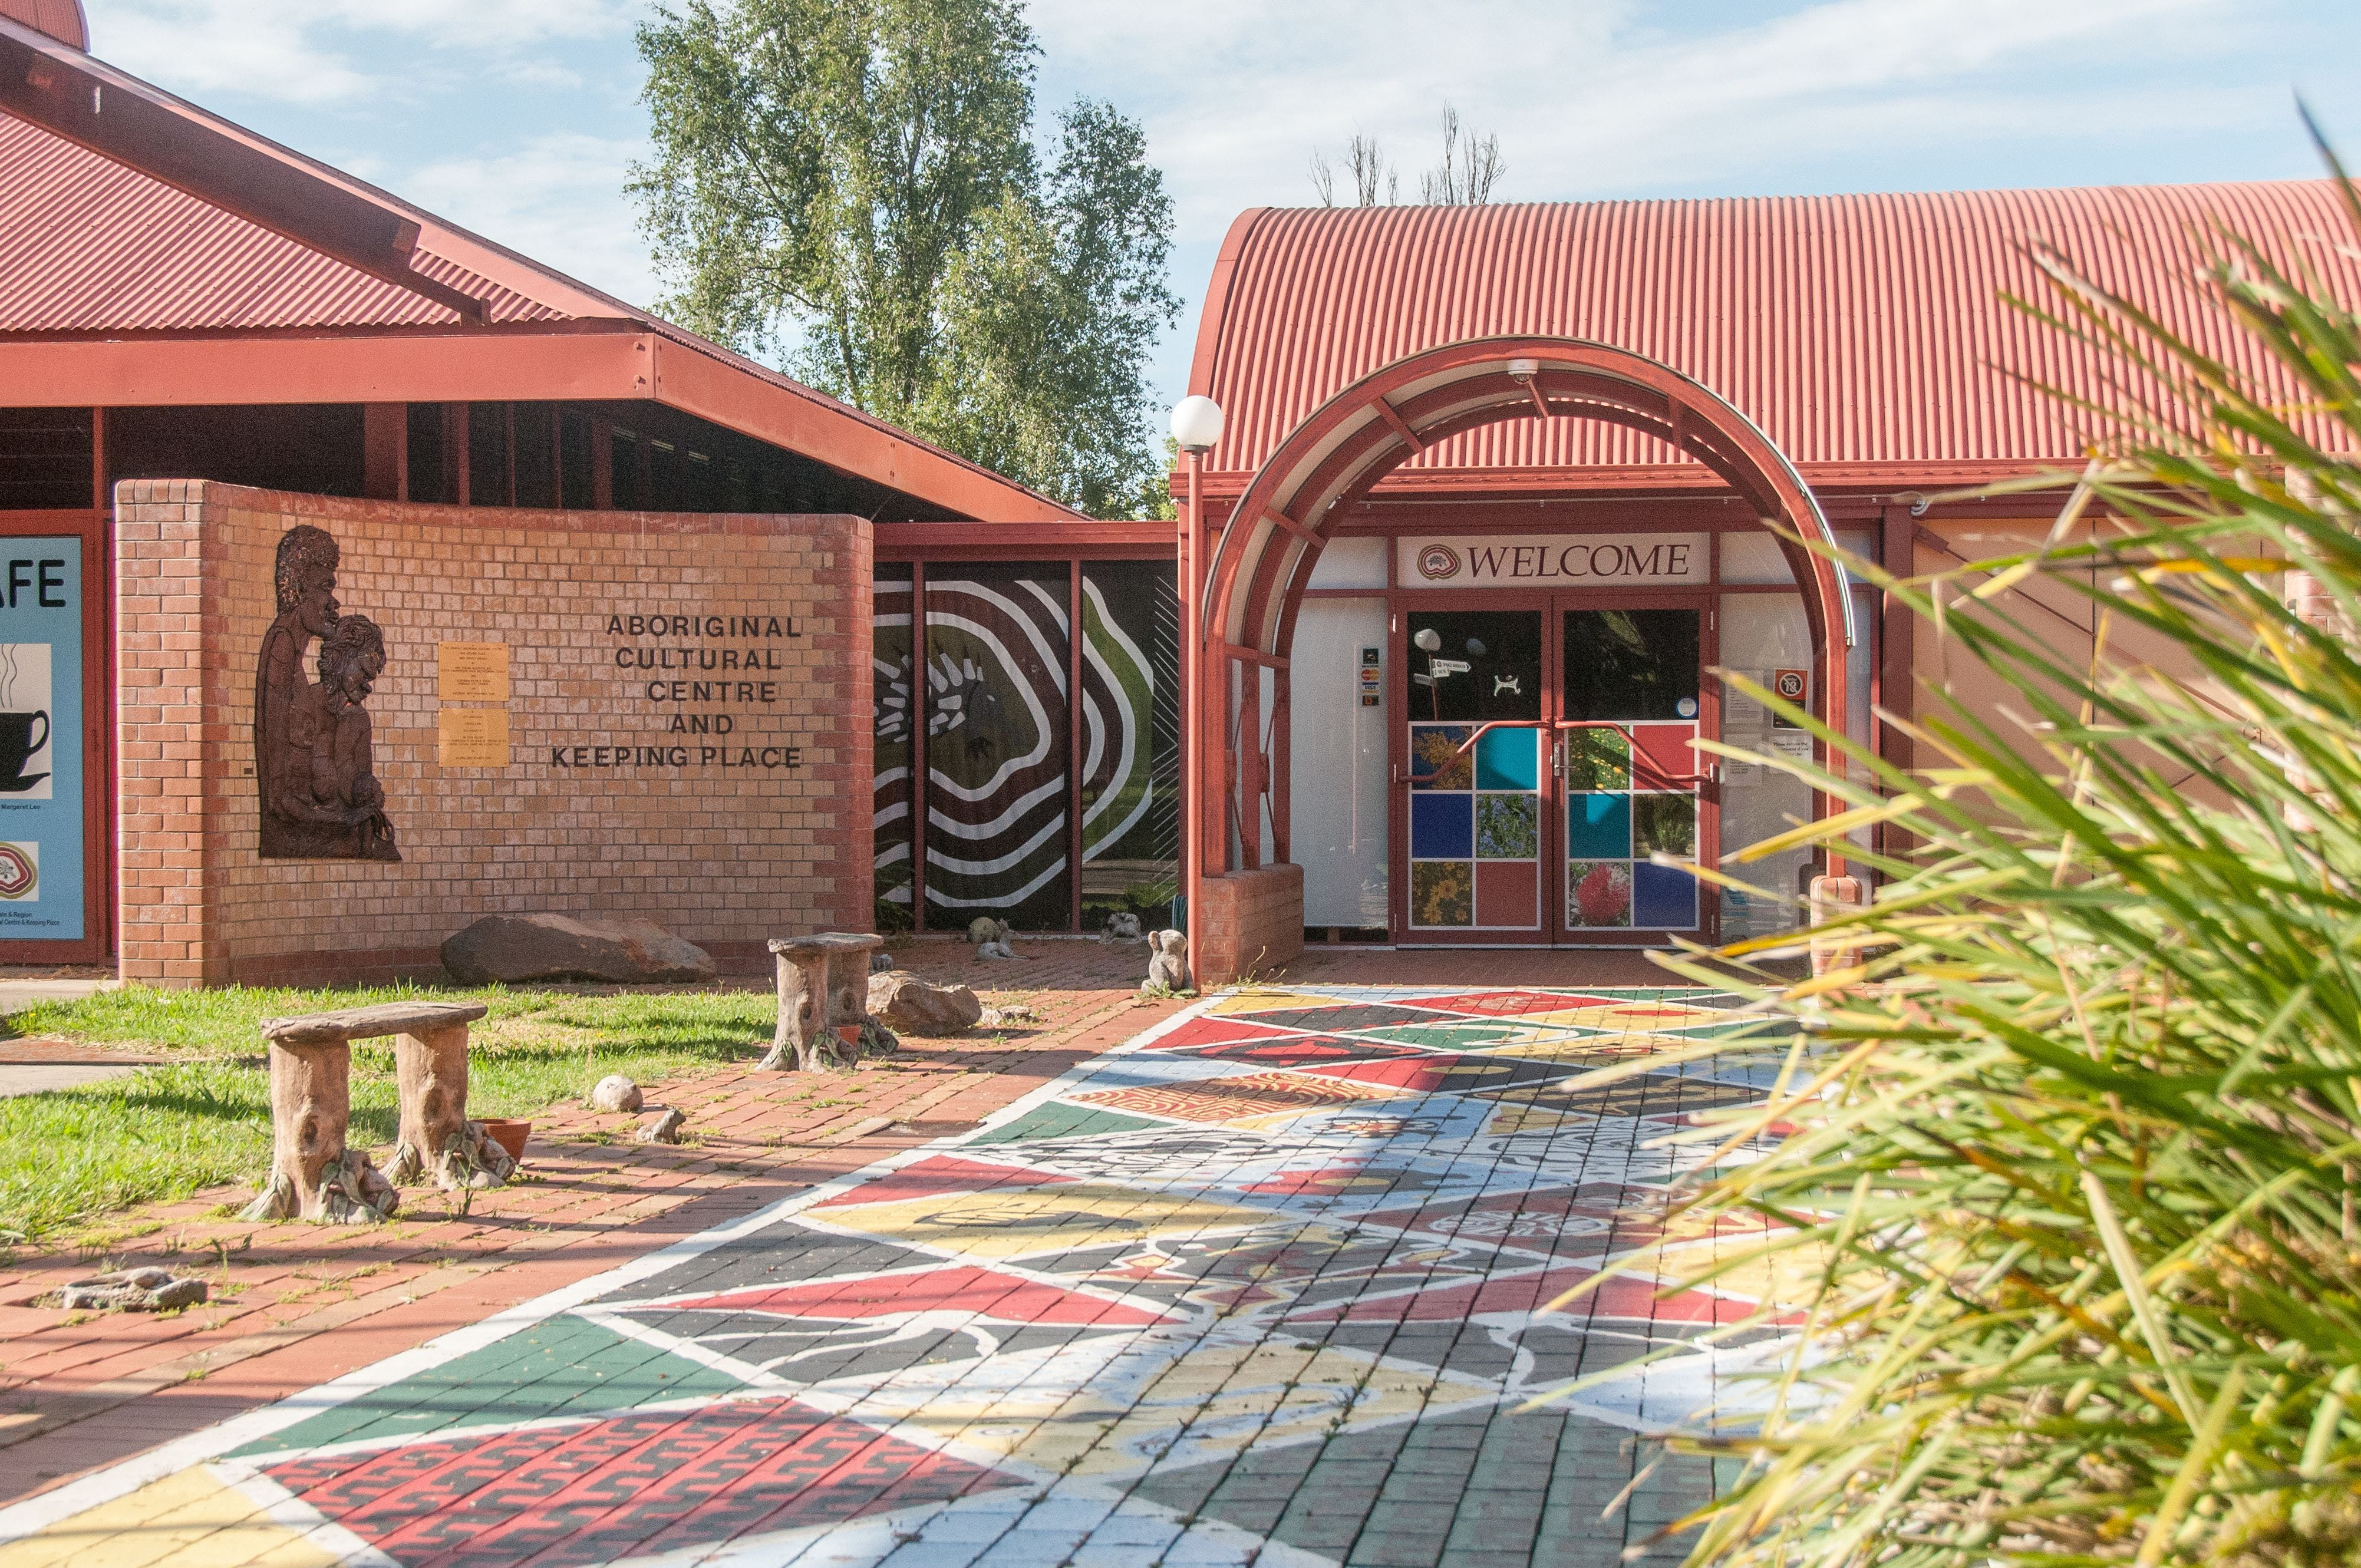 Armidale and Region Aboriginal Cultural Centre and Keeping Place - Tourism Brisbane